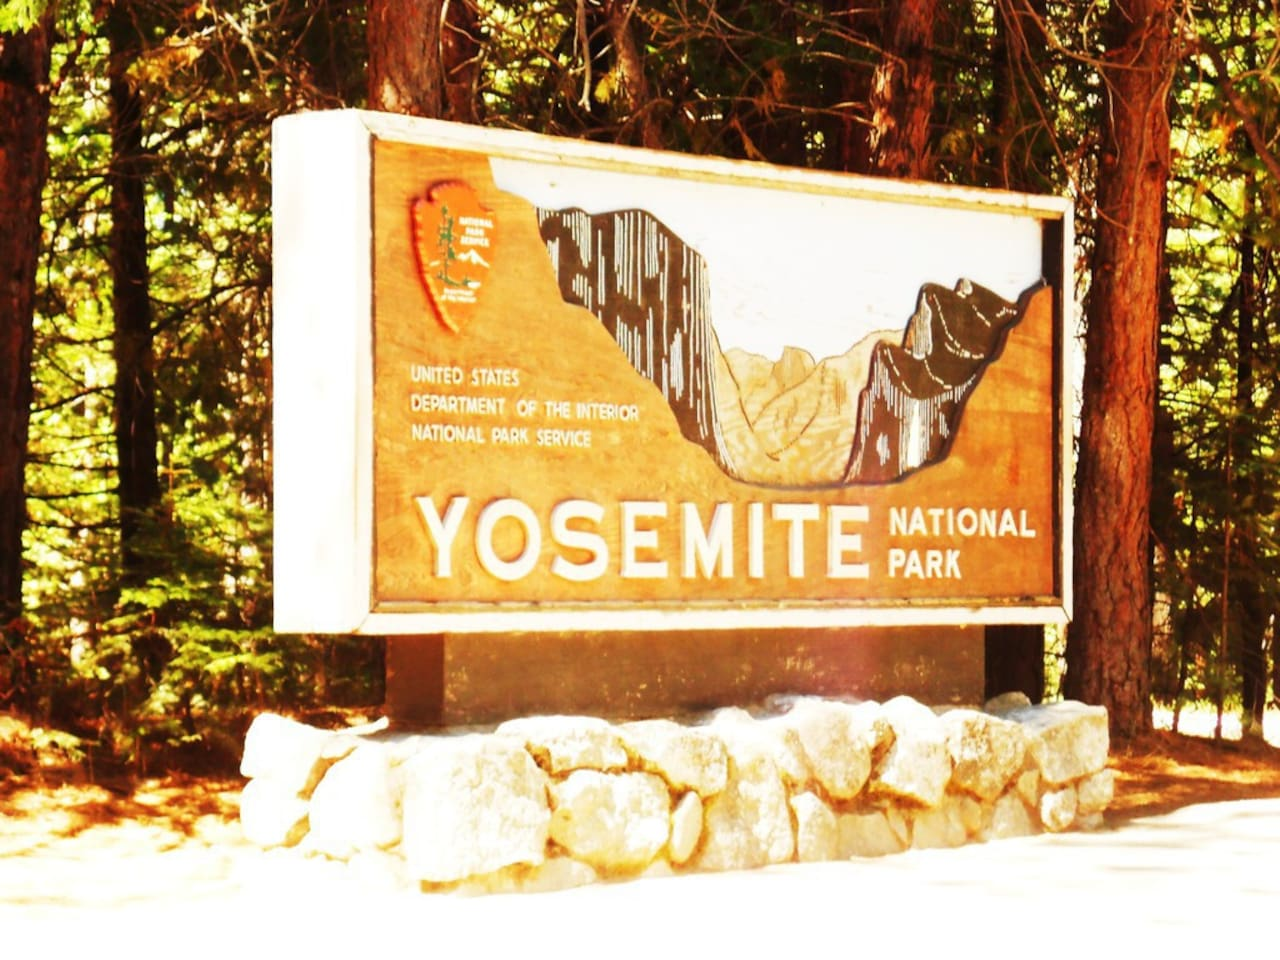 entrance sign to Yosemite National Park - 20 miles away